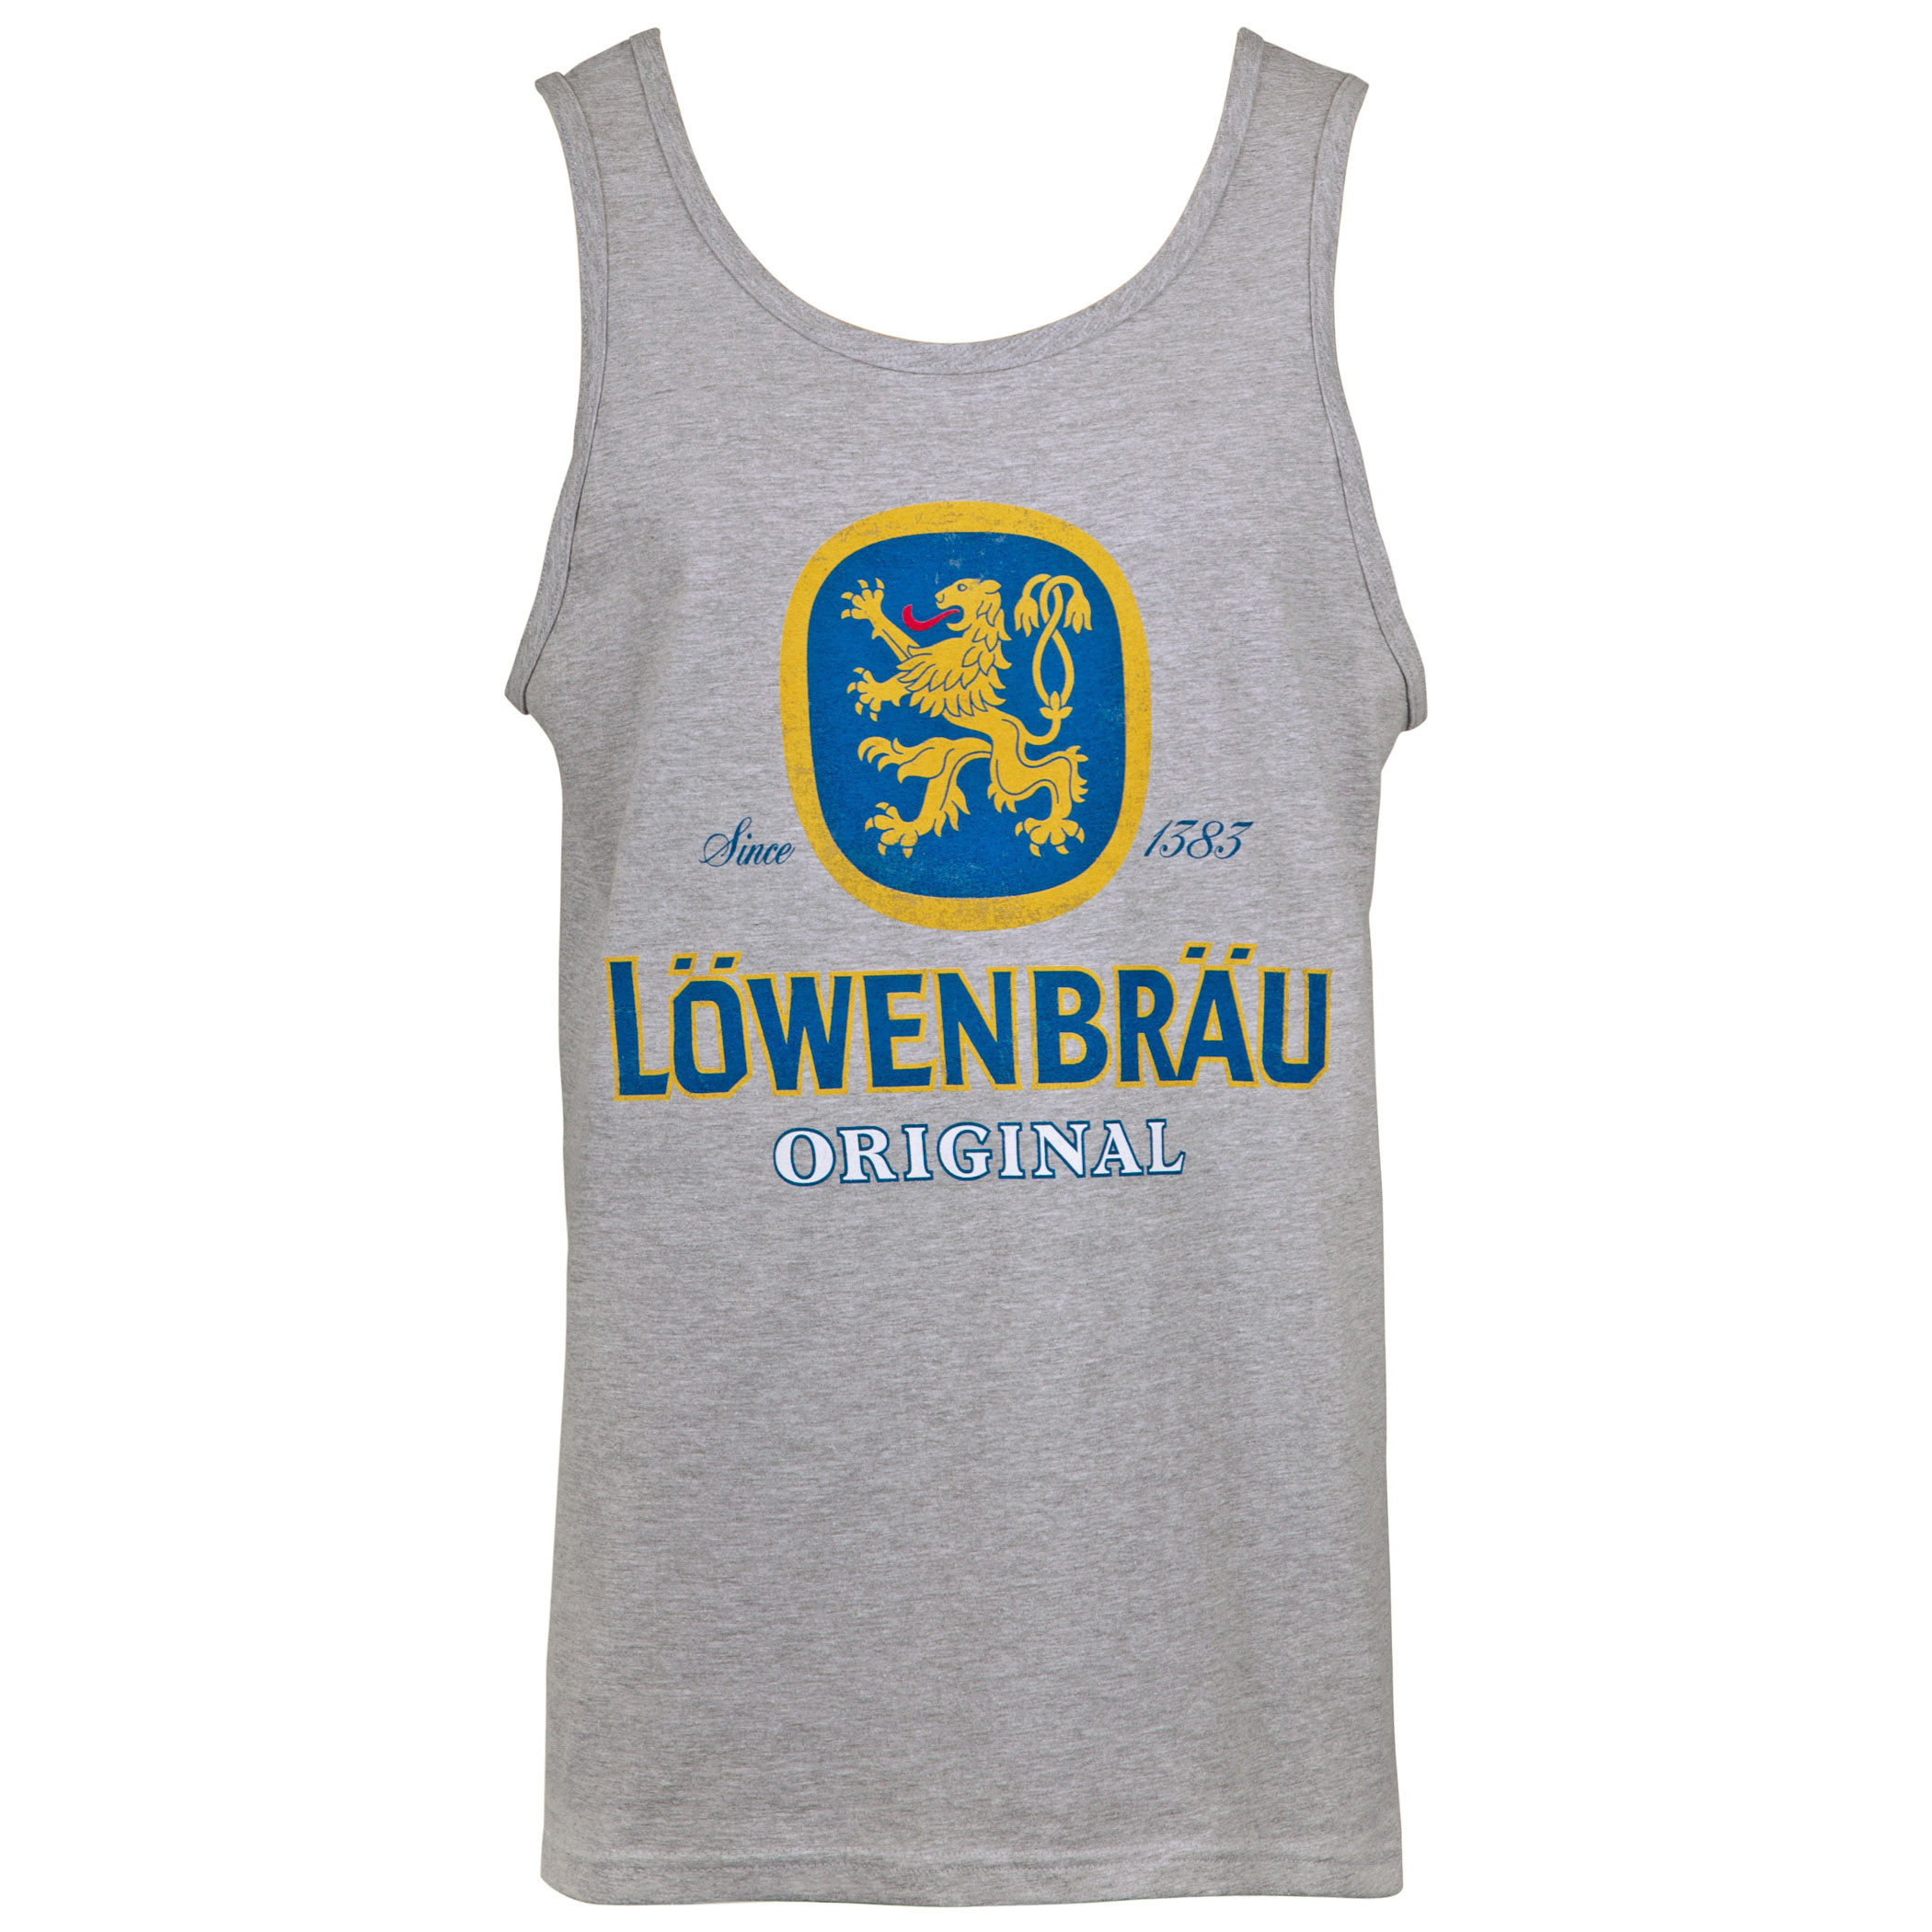 Lowenbrau Men\'s Grey Logo Tank Top.